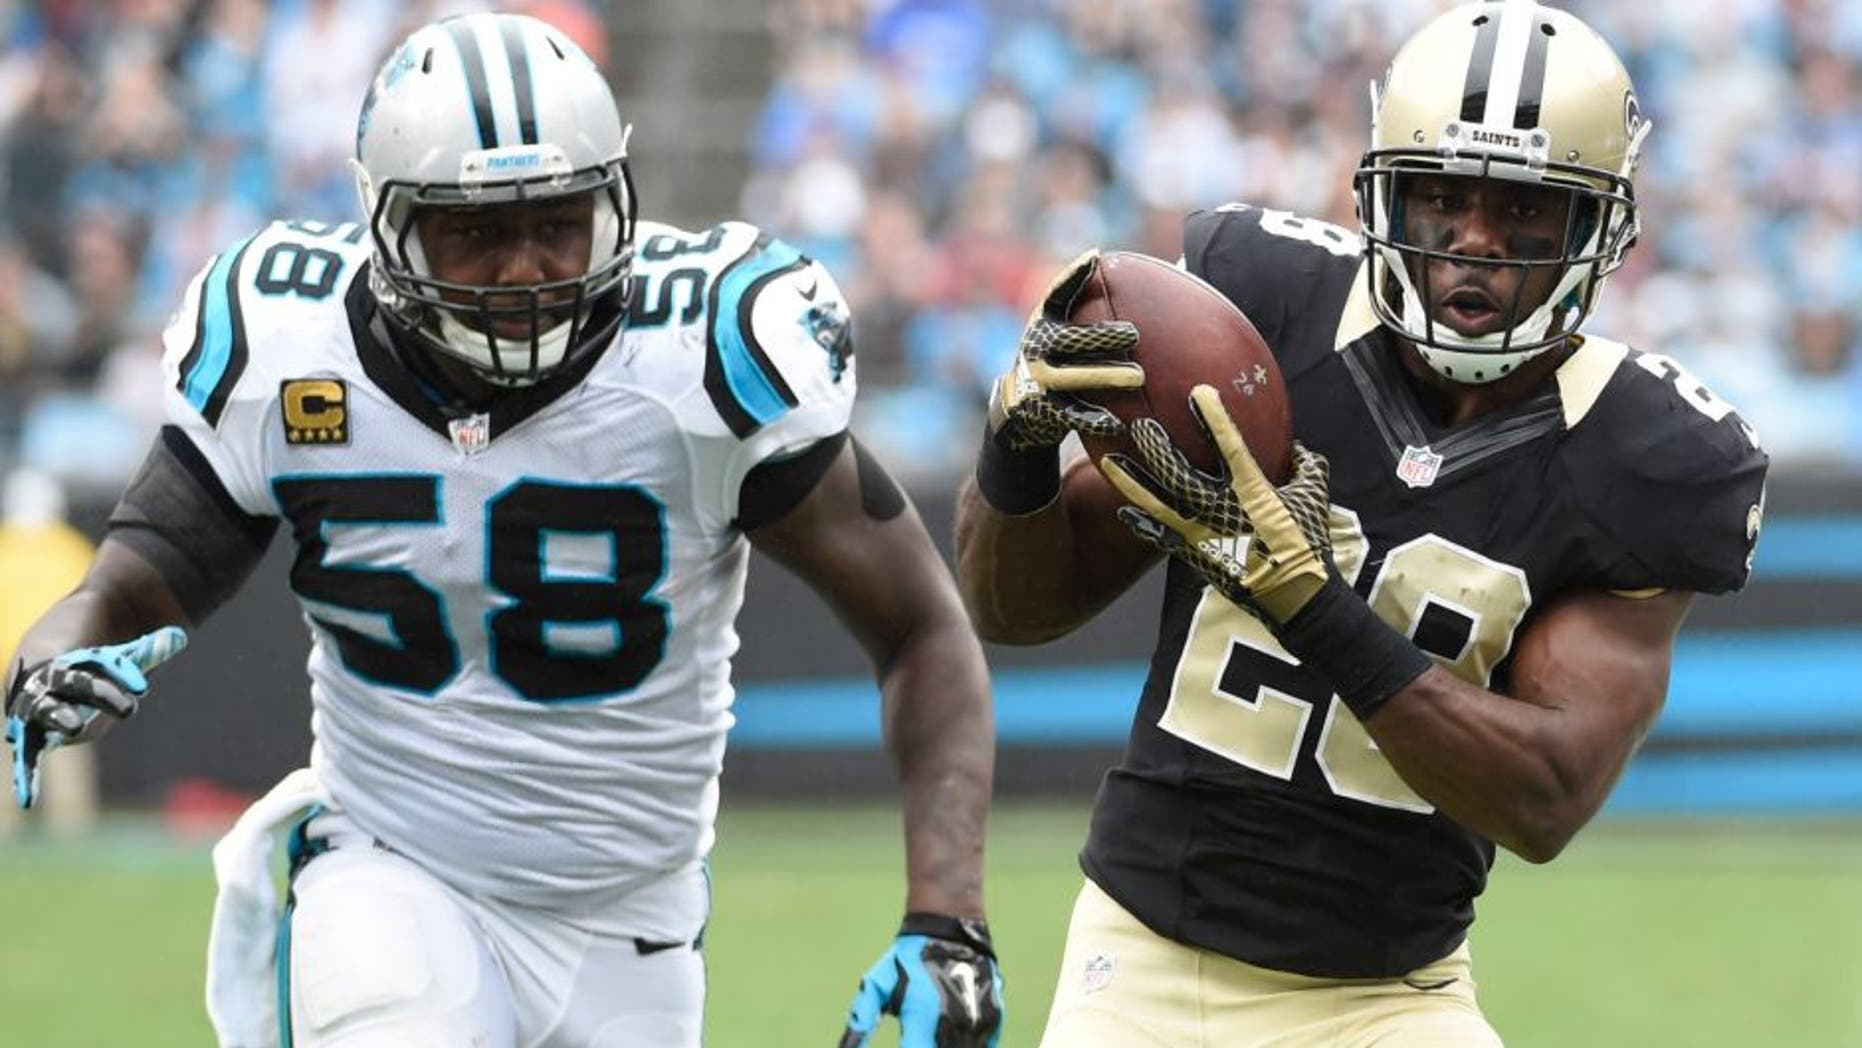 Sep 27, 2015; Charlotte, NC, USA; New Orleans Saints running back C.J. Spiller (28) with the ball as Carolina Panthers outside linebacker Thomas Davis (58) defends in the fourth quarter. The Panthers defeated the Saints 27-22 at Bank of America Stadium. Mandatory Credit: Bob Donnan-USA TODAY Sports